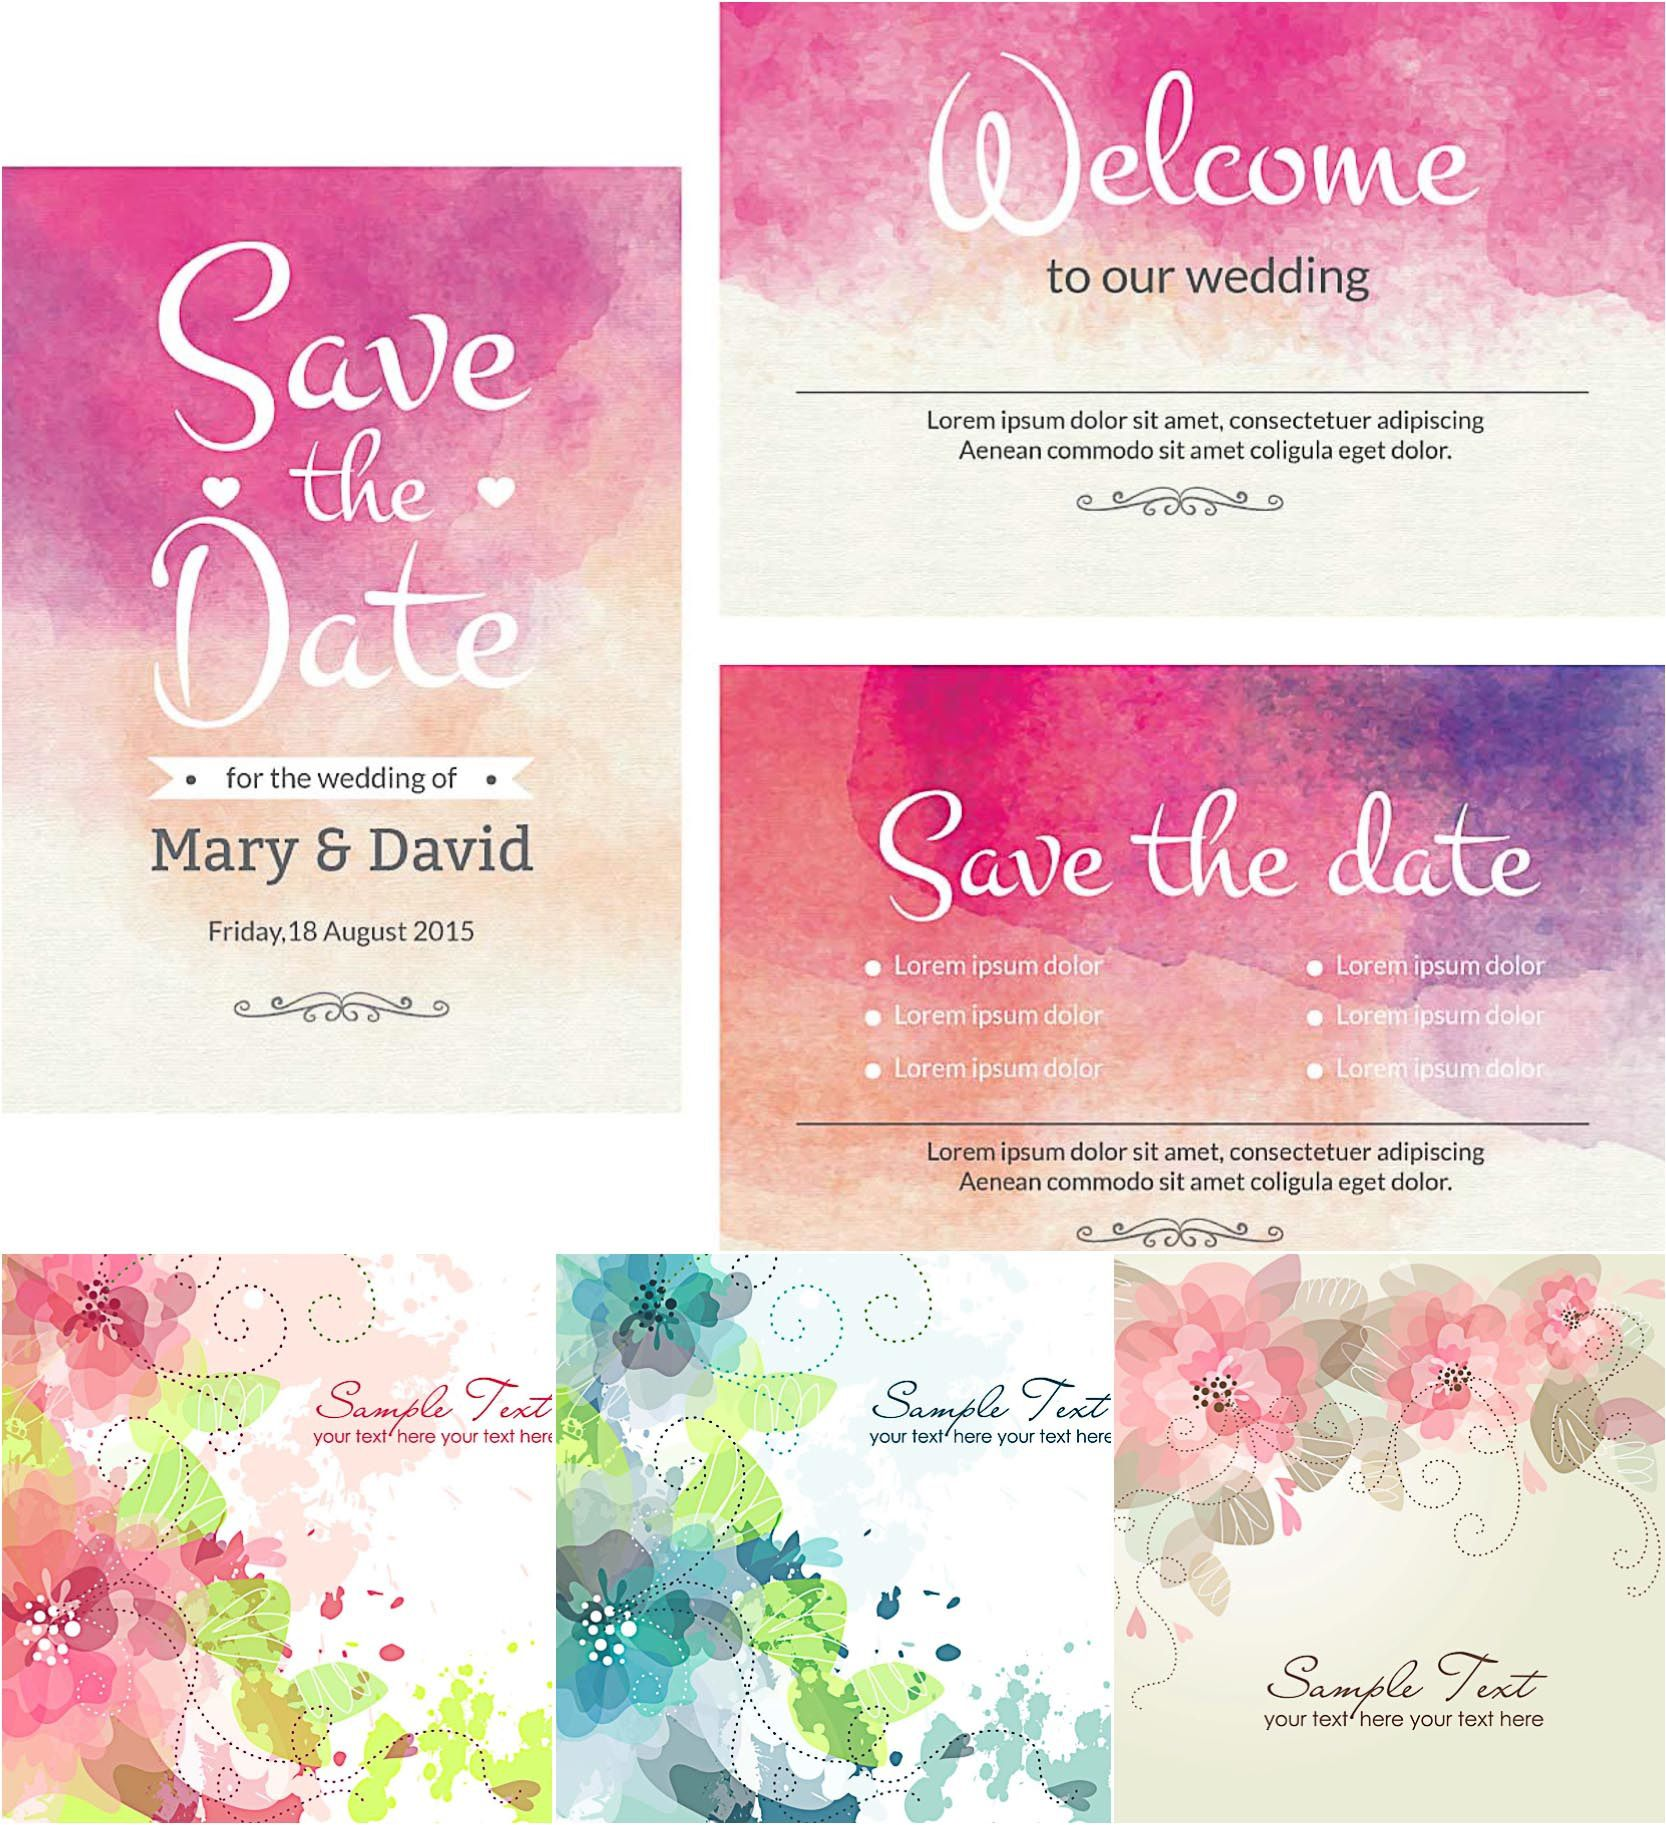 008 Amazing Free Download Invitation Card Design Software Highest Clarity  Full Version Wedding For PcFull